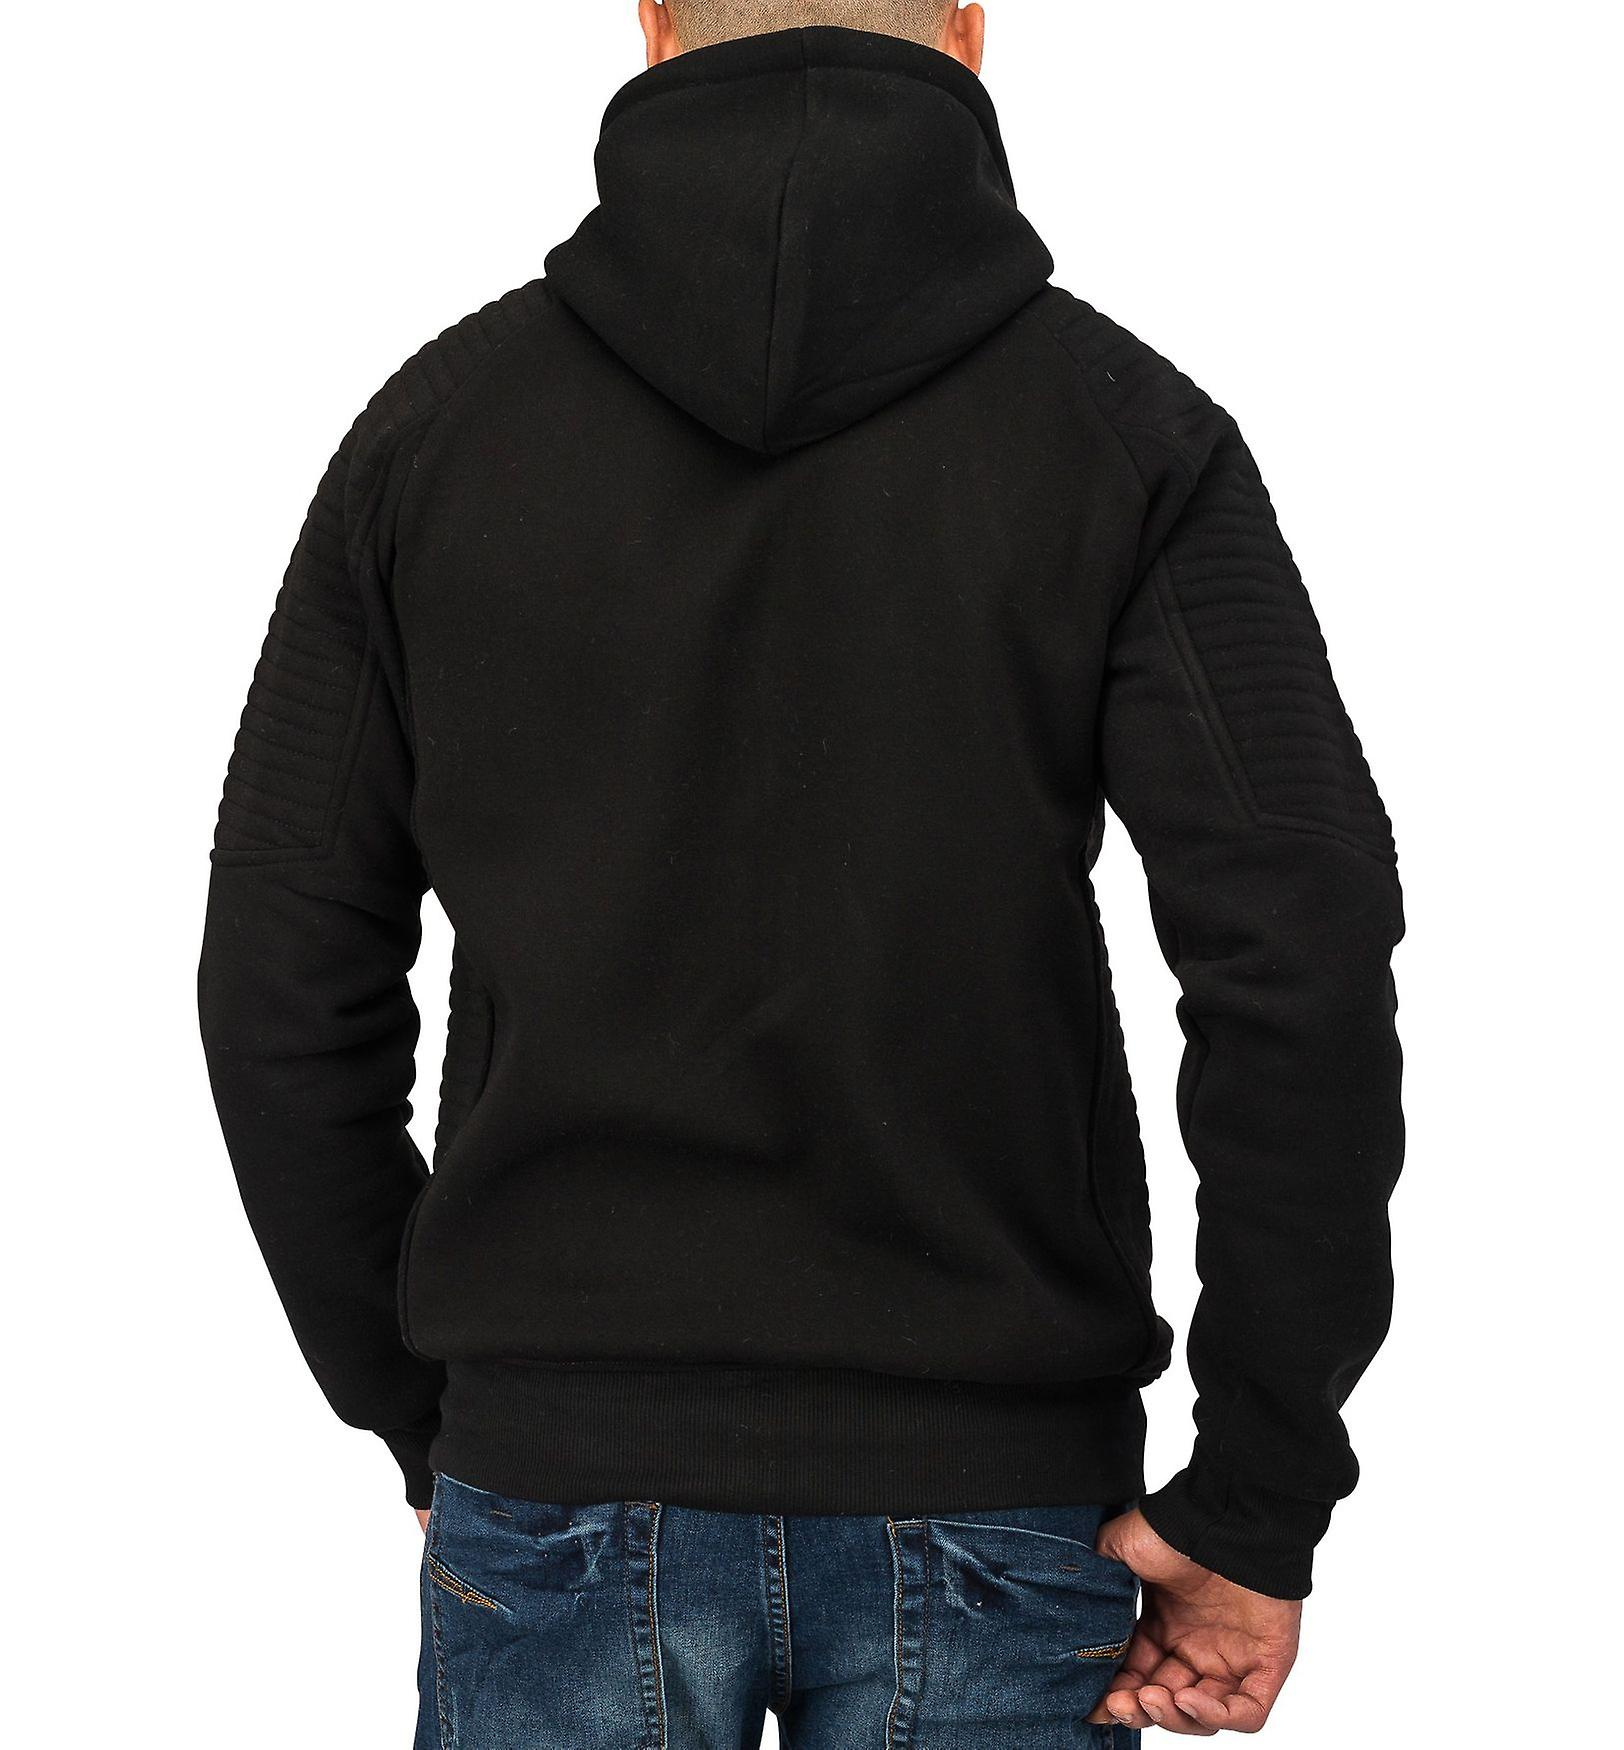 Mens Sweatjacket BROAD Sweatshirt Jacket Hooded Fitness Fashion Zip Hoodie